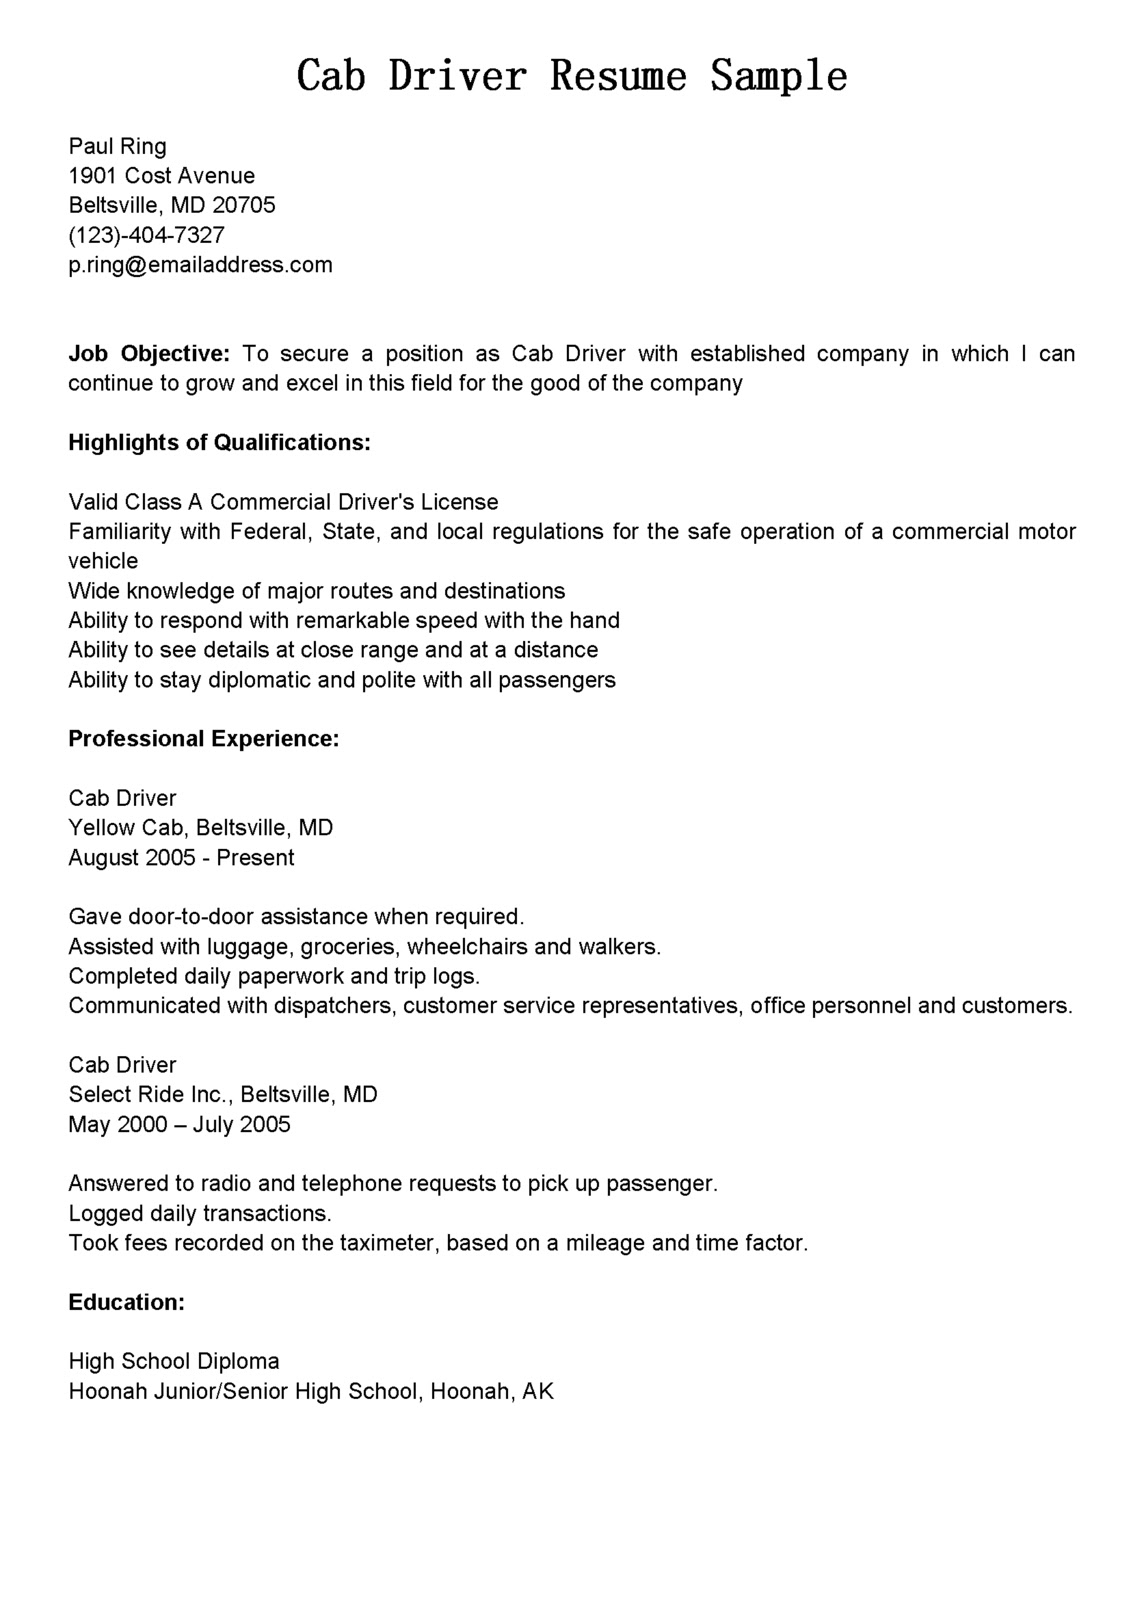 Cab Driver Resume SampleBlank Resume Templates For Free To Fill In